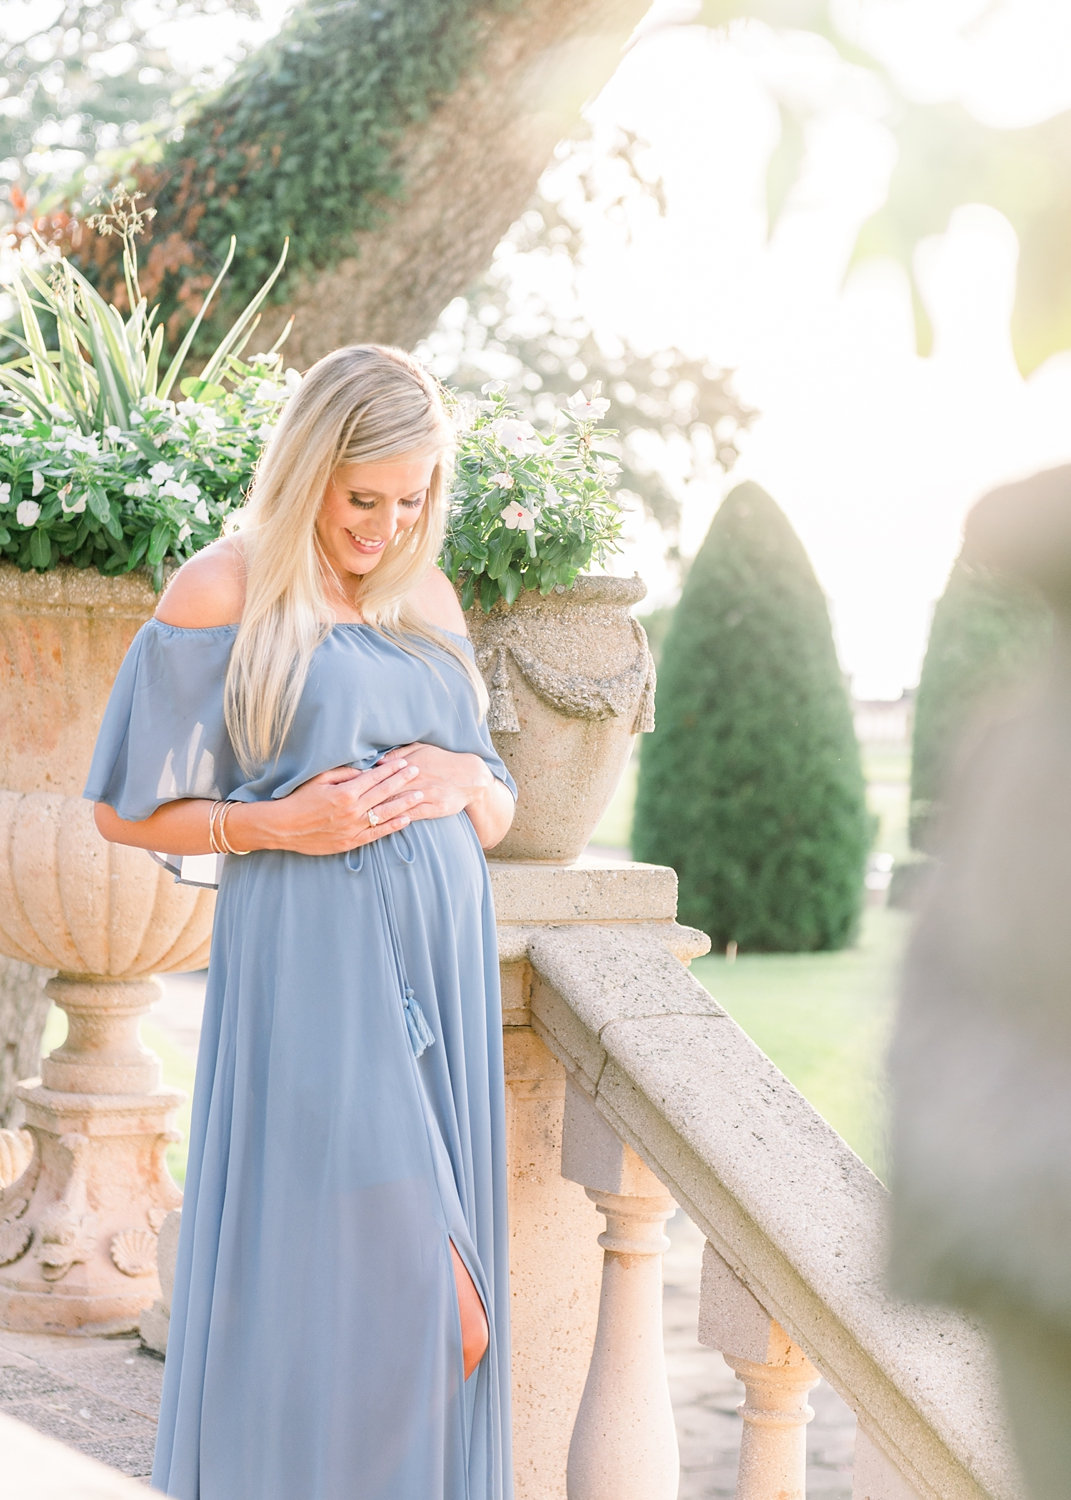 maternity photo, pregnant blonde woman with long blonde hair, wearing delicate jewelry and a strapless blue dress, Jacksonville, Florida